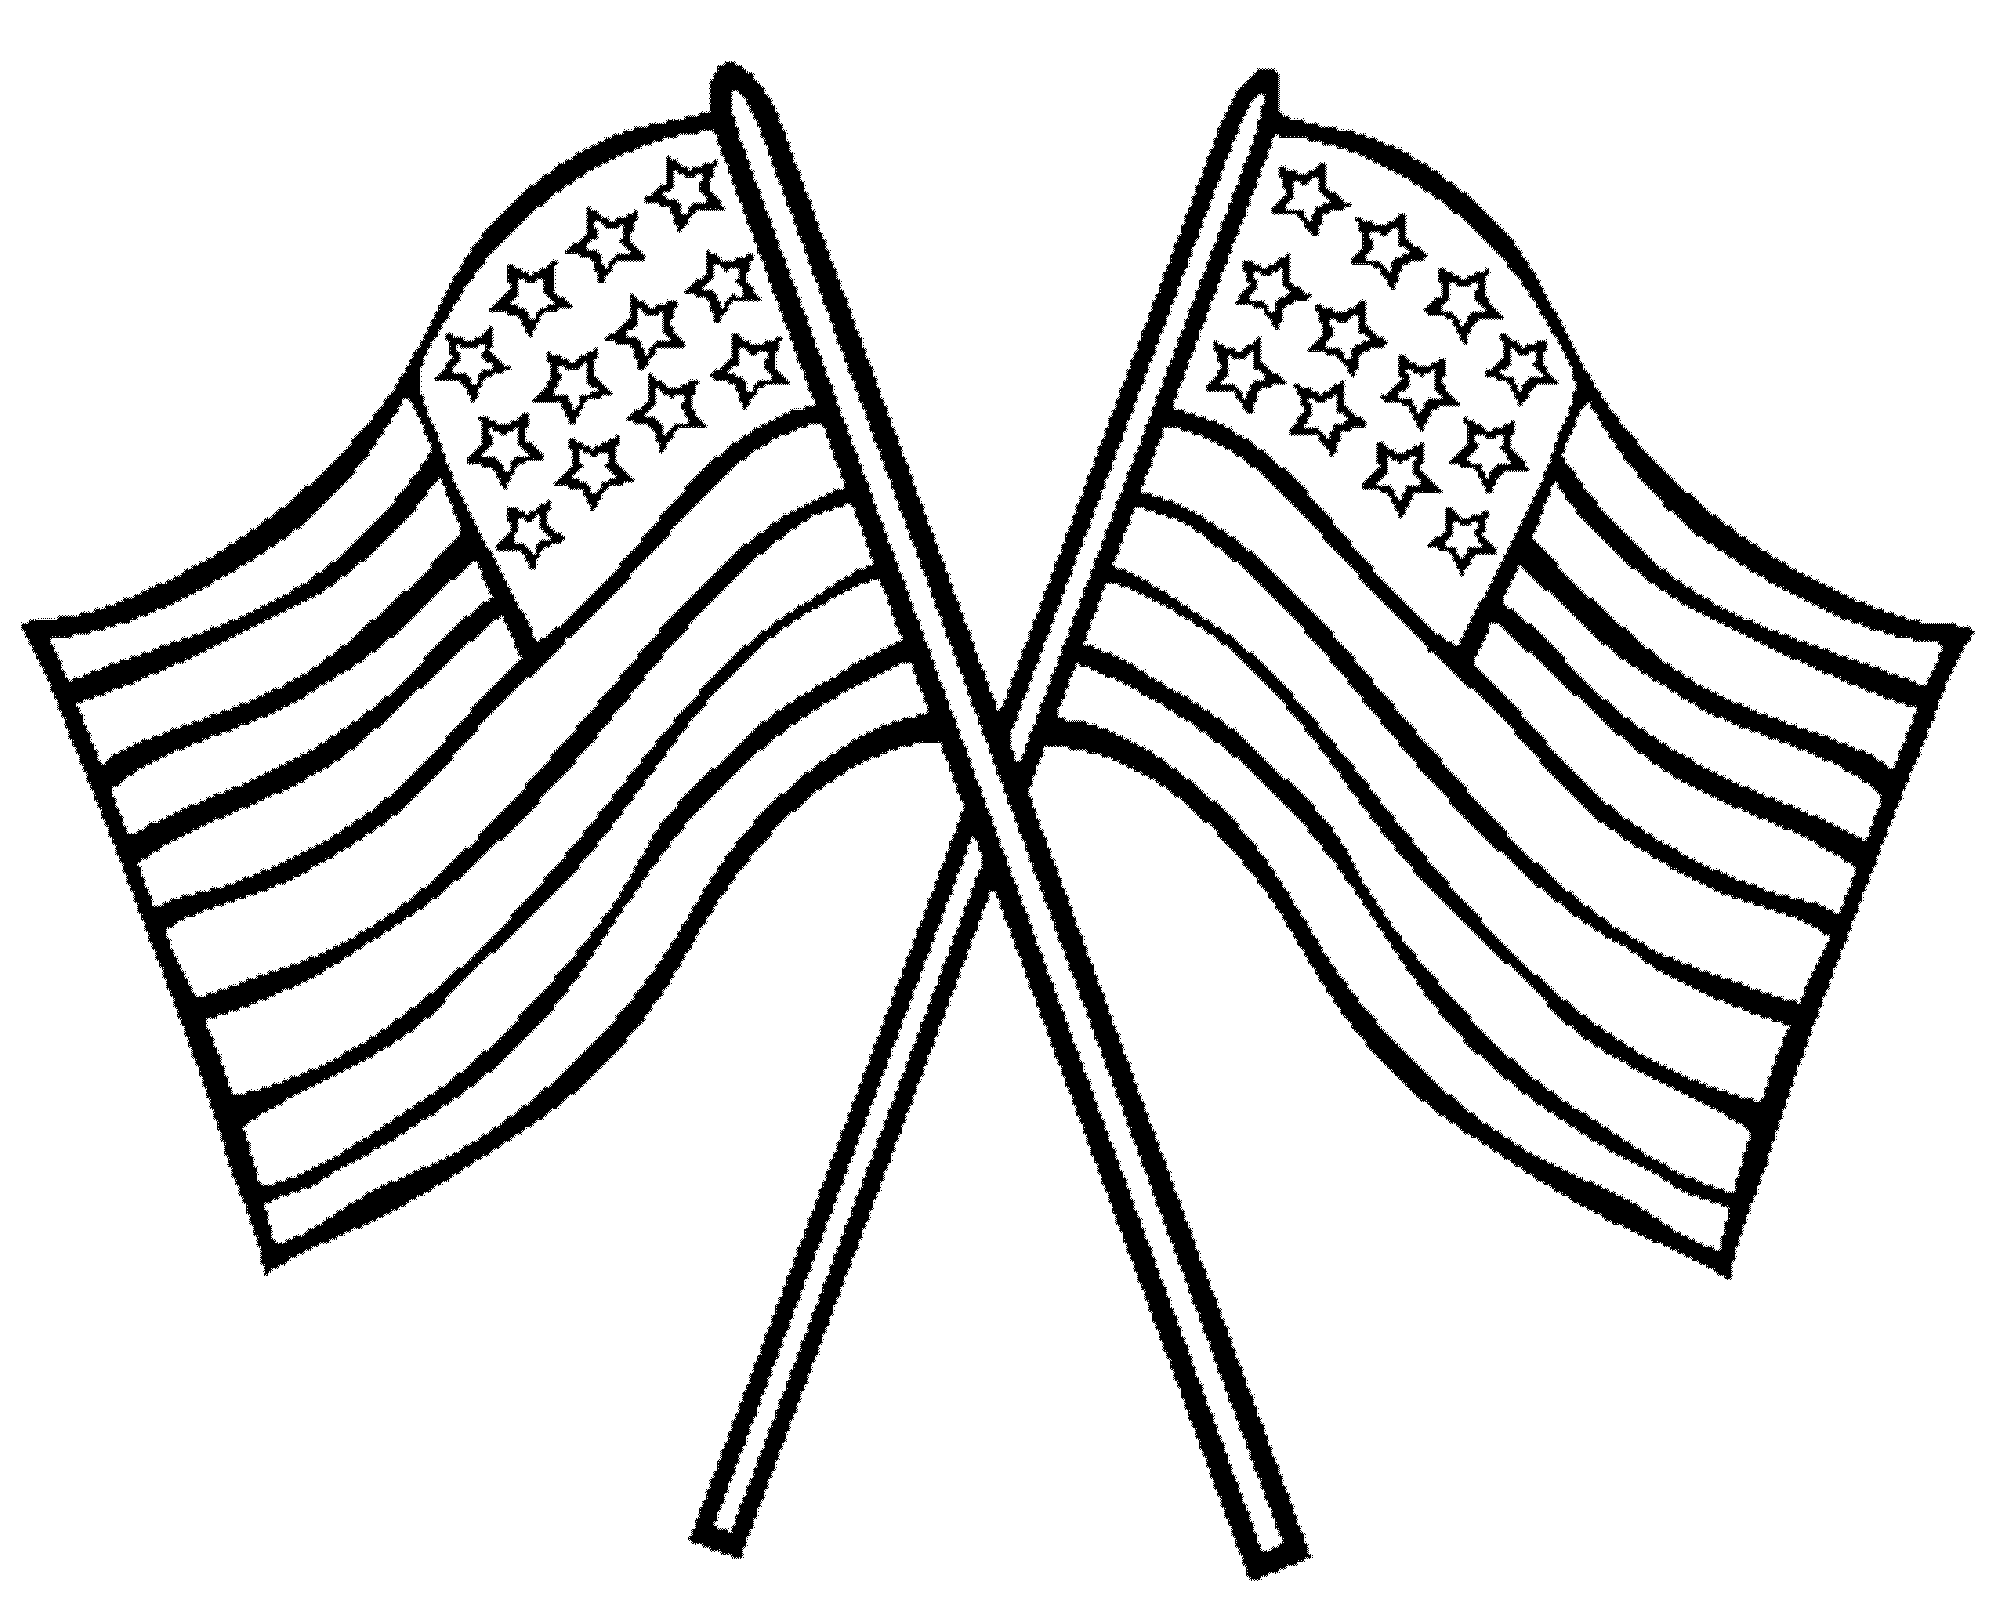 small american flag coloring page free american flag printable download free clip art free small page coloring flag american